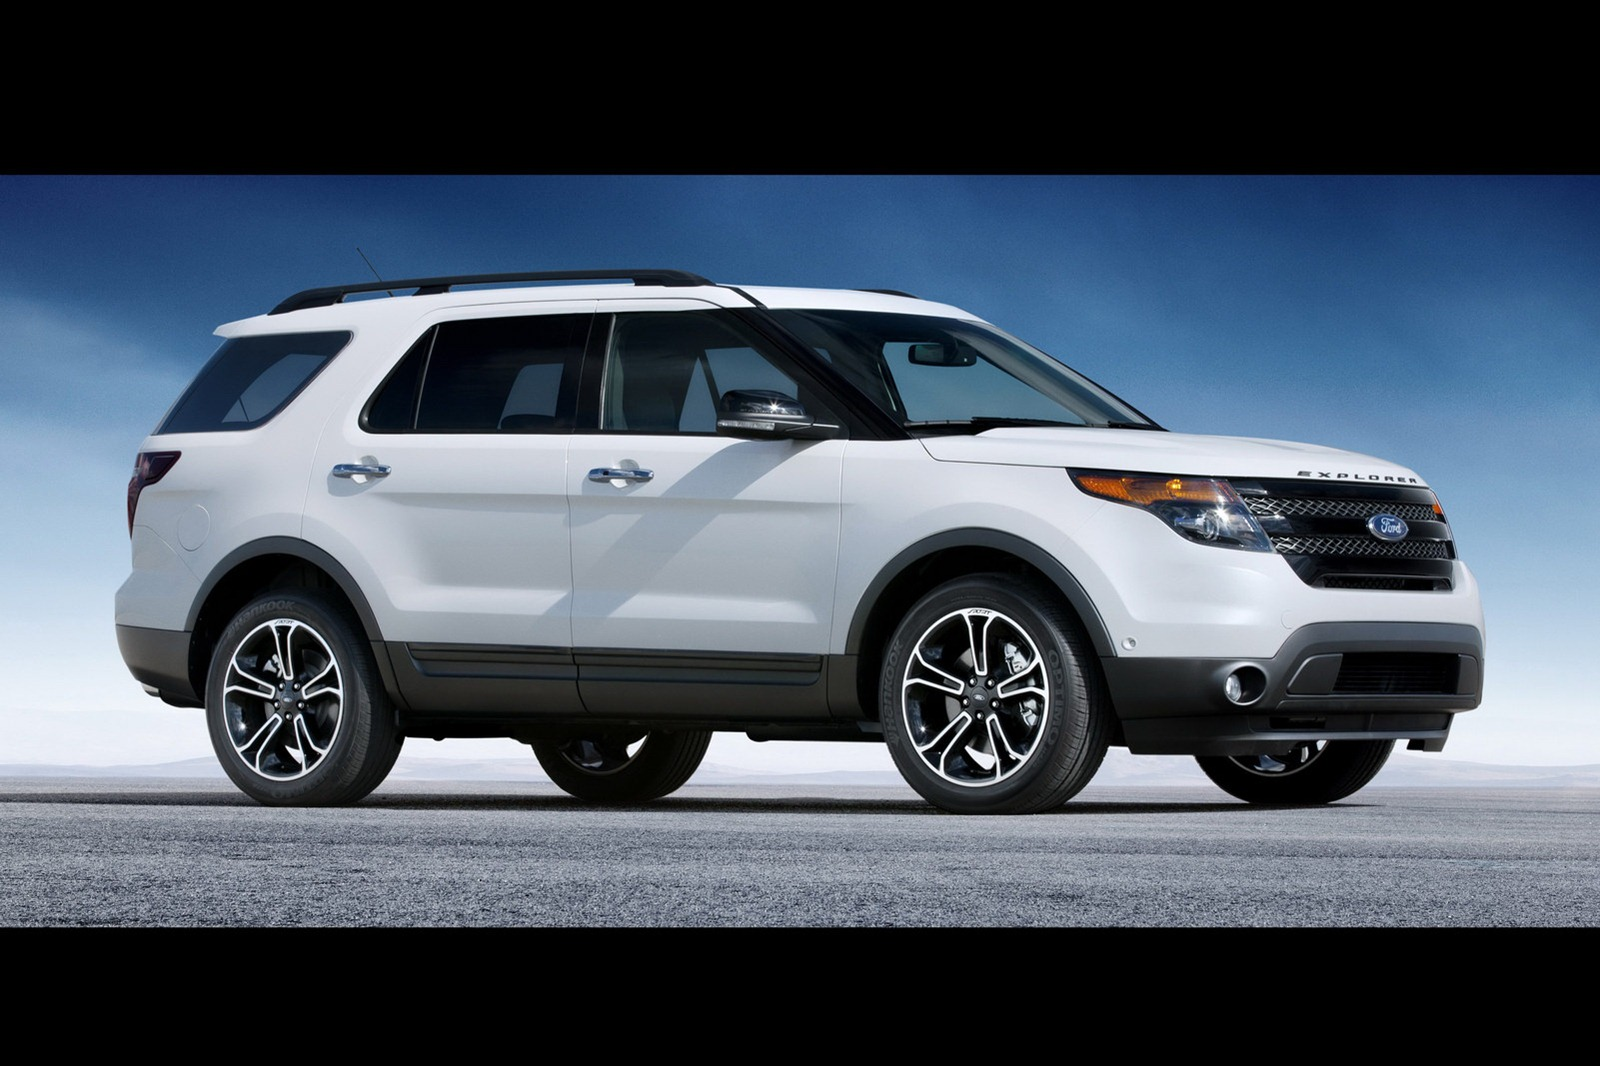 2013 Ford Explorer Sport Configurator Reveals Pricing